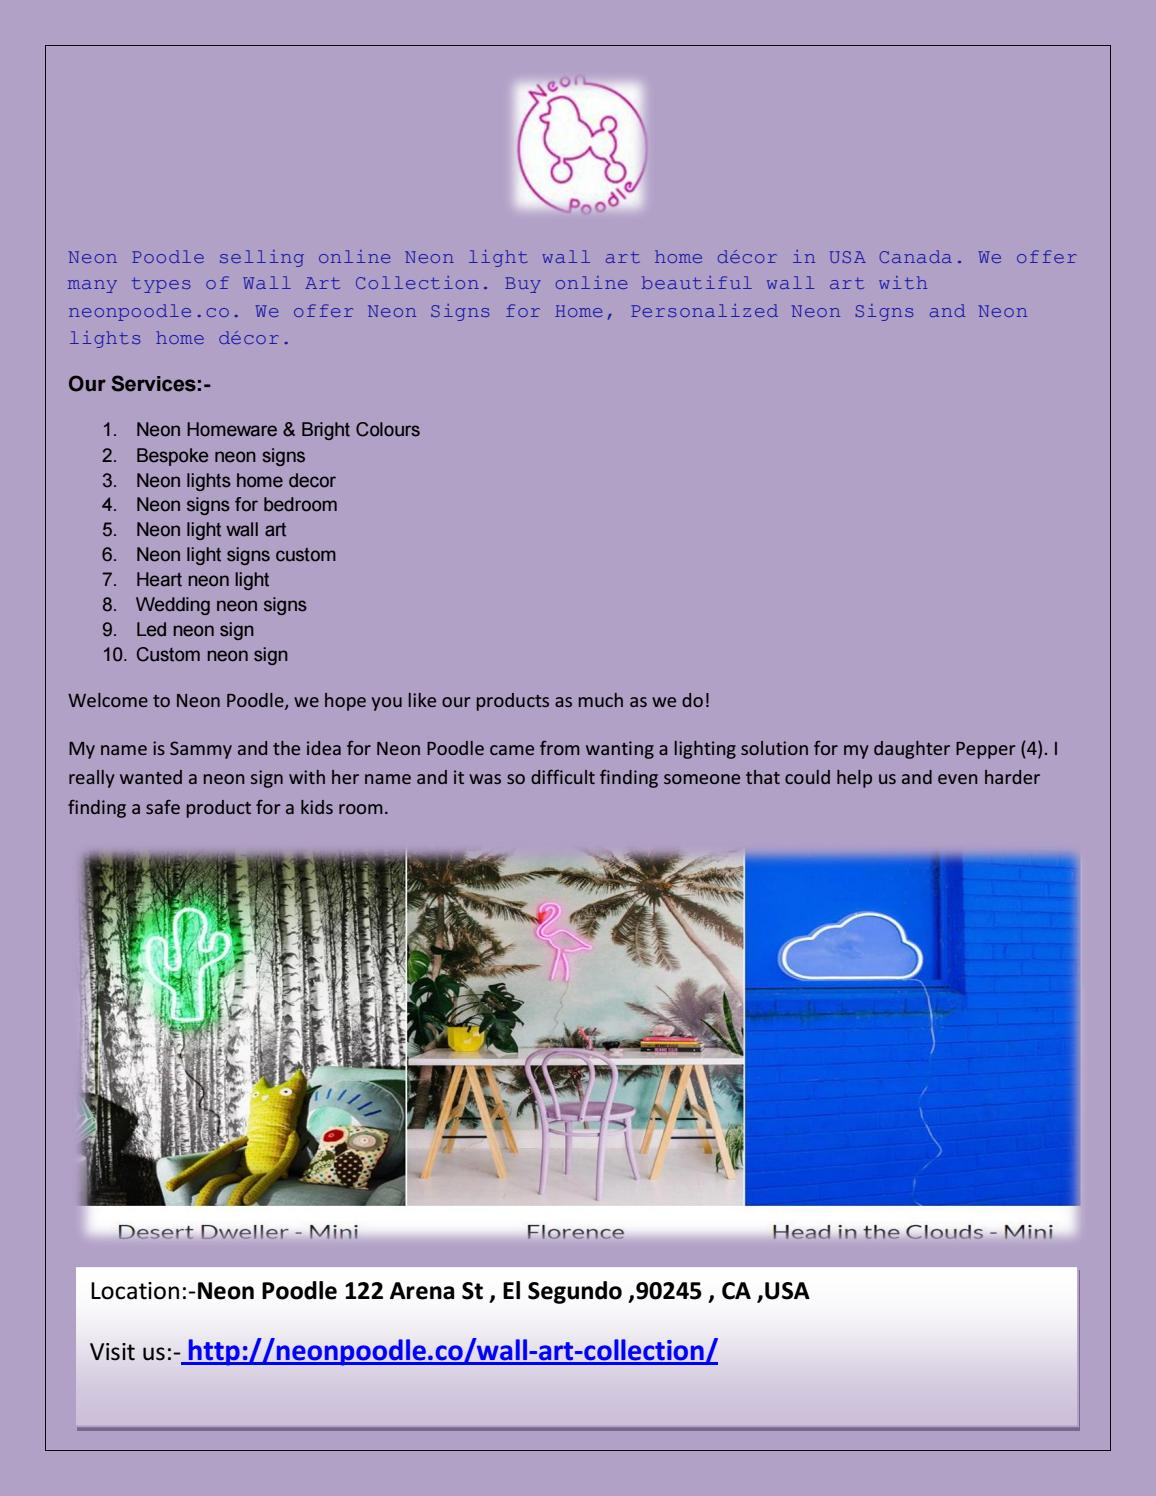 Online Selling Neon Light Wall Art Home Dccor In Usa Canada By Cashforland Issuu